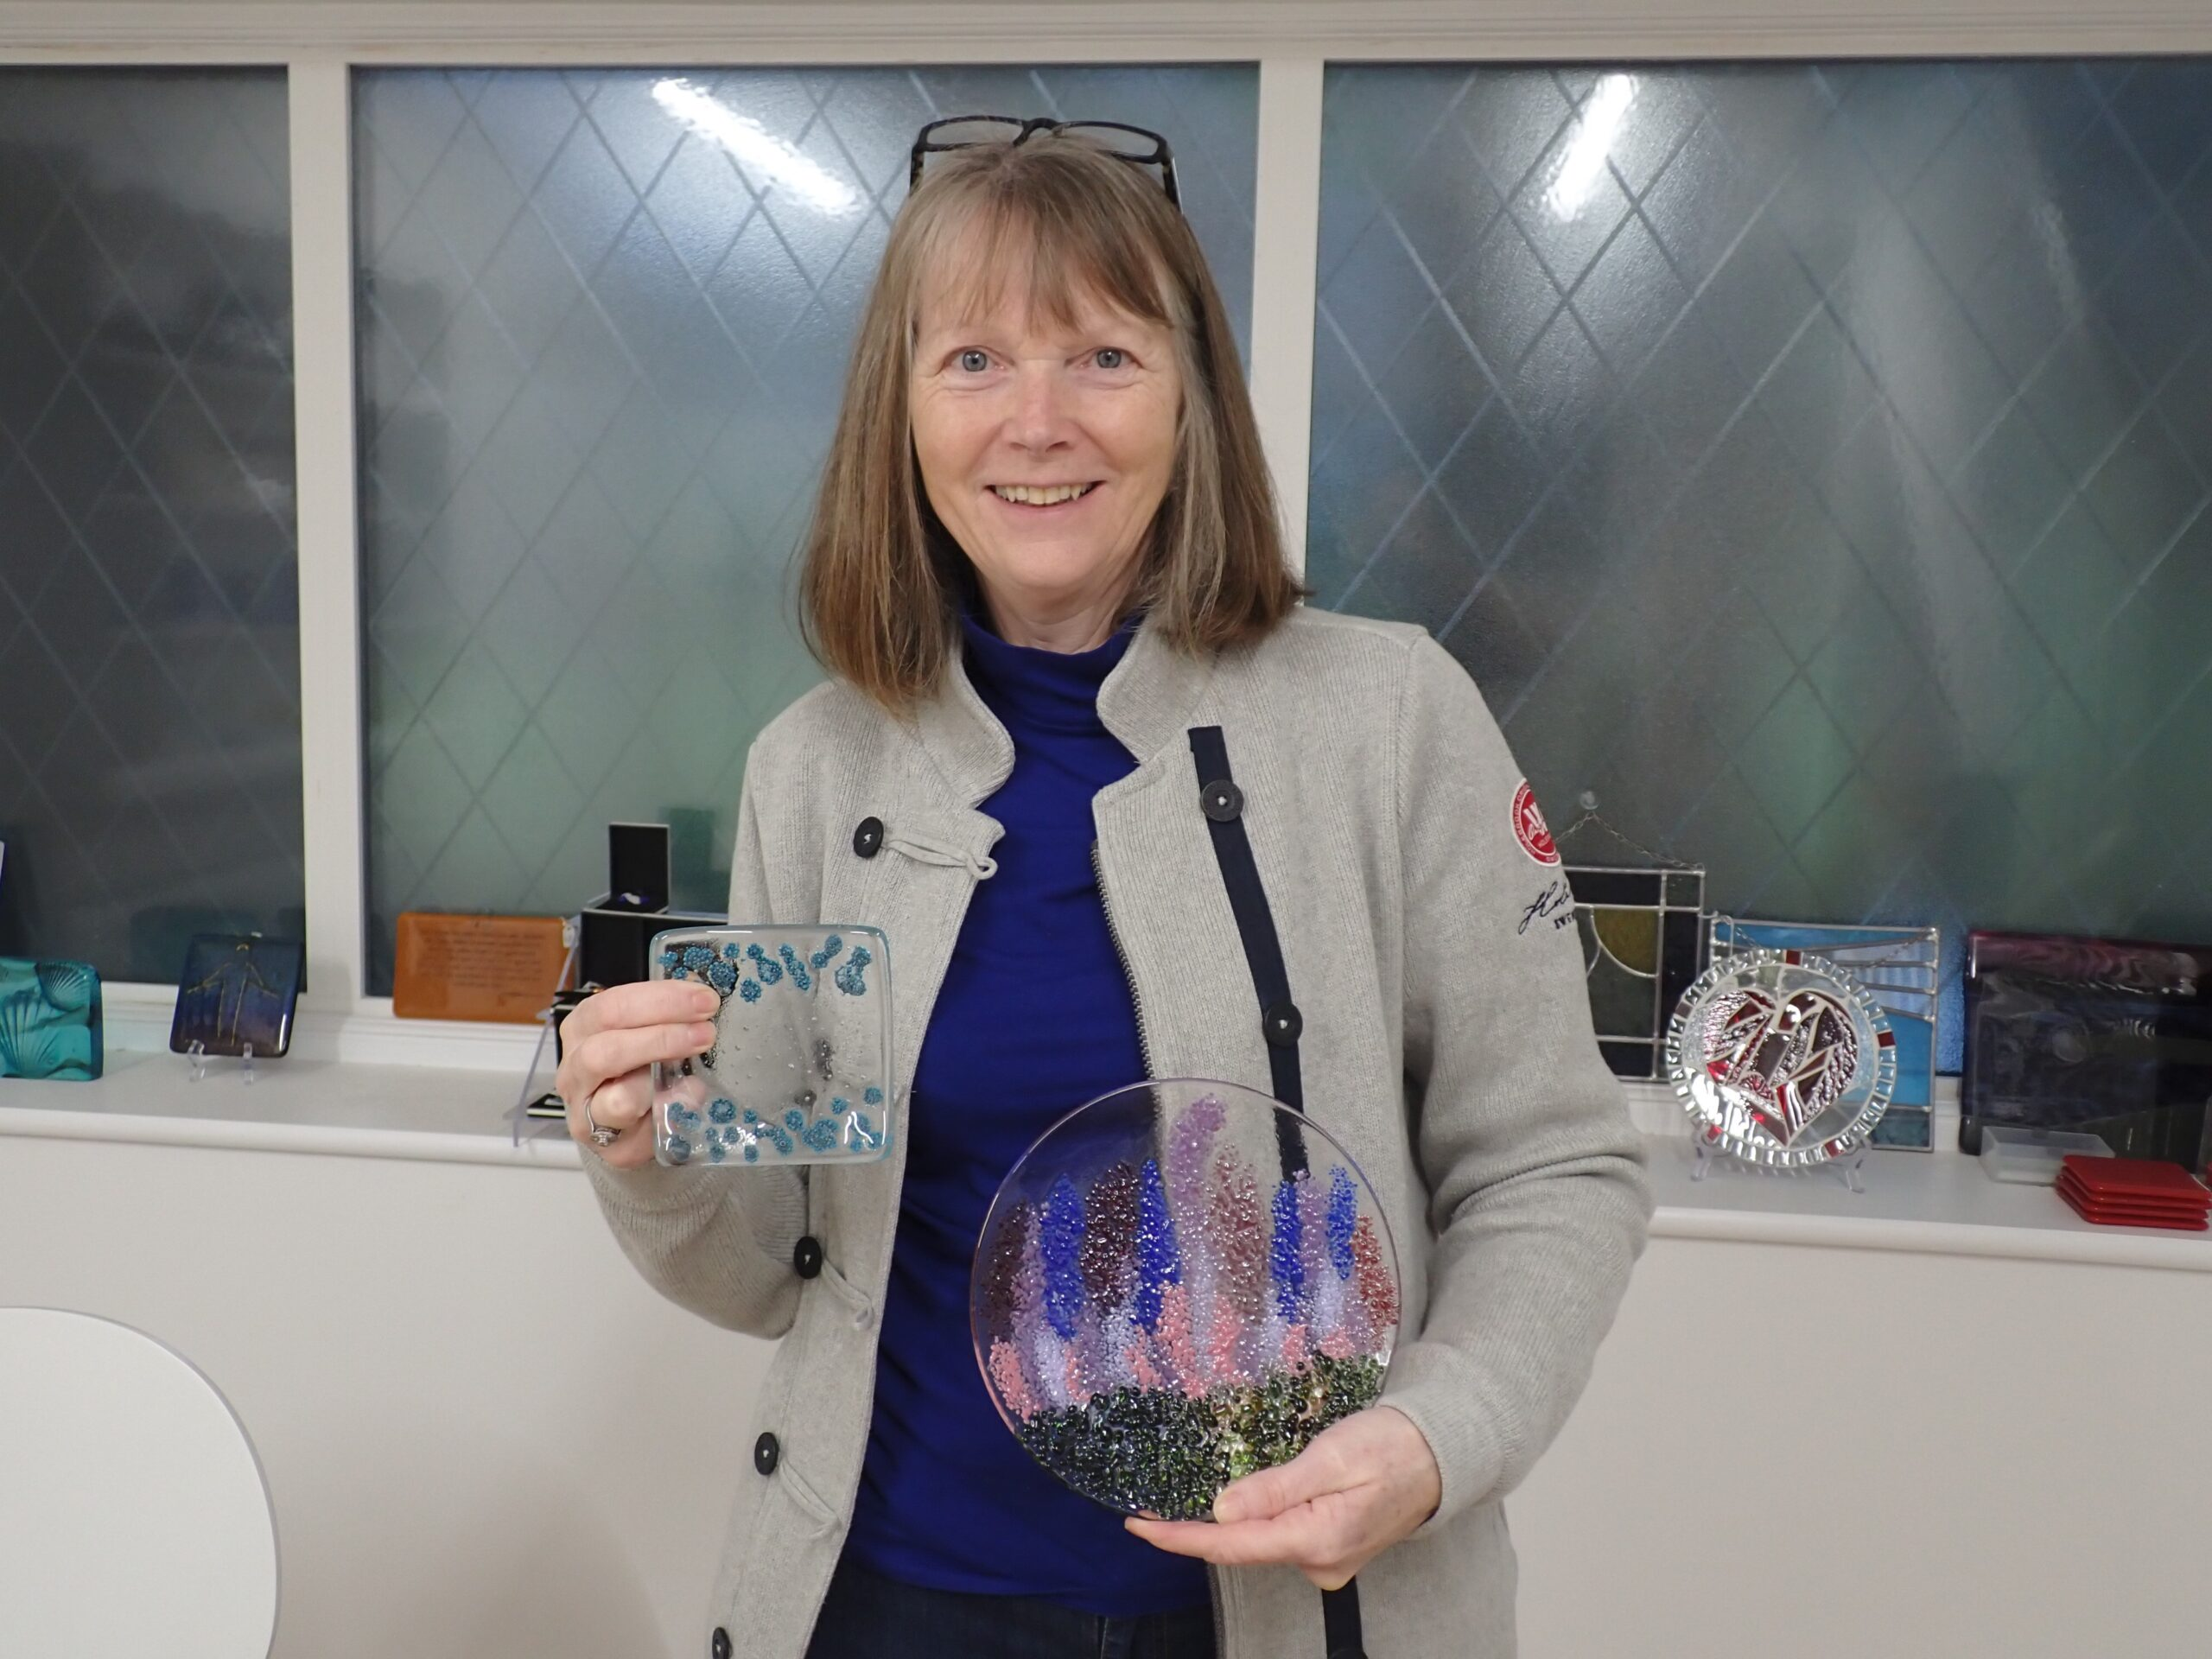 A delighted student collects her creations which she made on a glass fusing taster day with Creative Retreats and Holidays - a plate decorated with delphiniums and a spotty glass dish